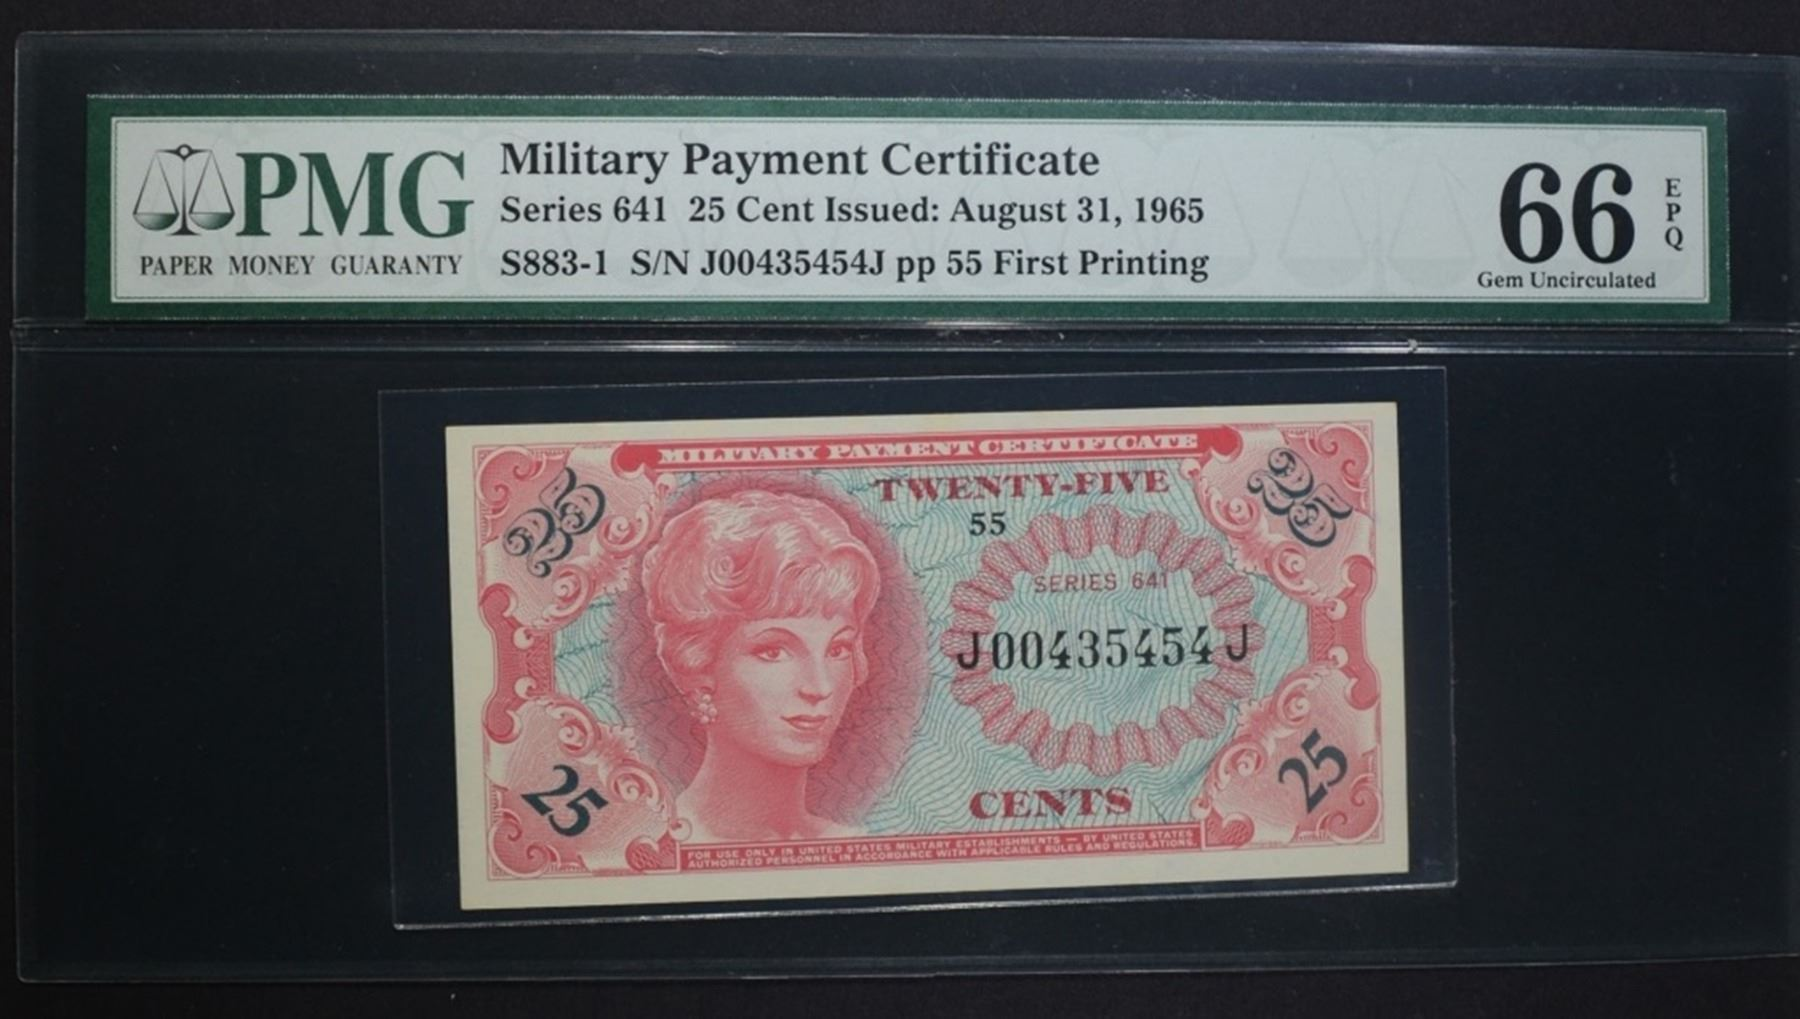 Series 641 25 Cent Military Payment Certificate Silver City Auctions